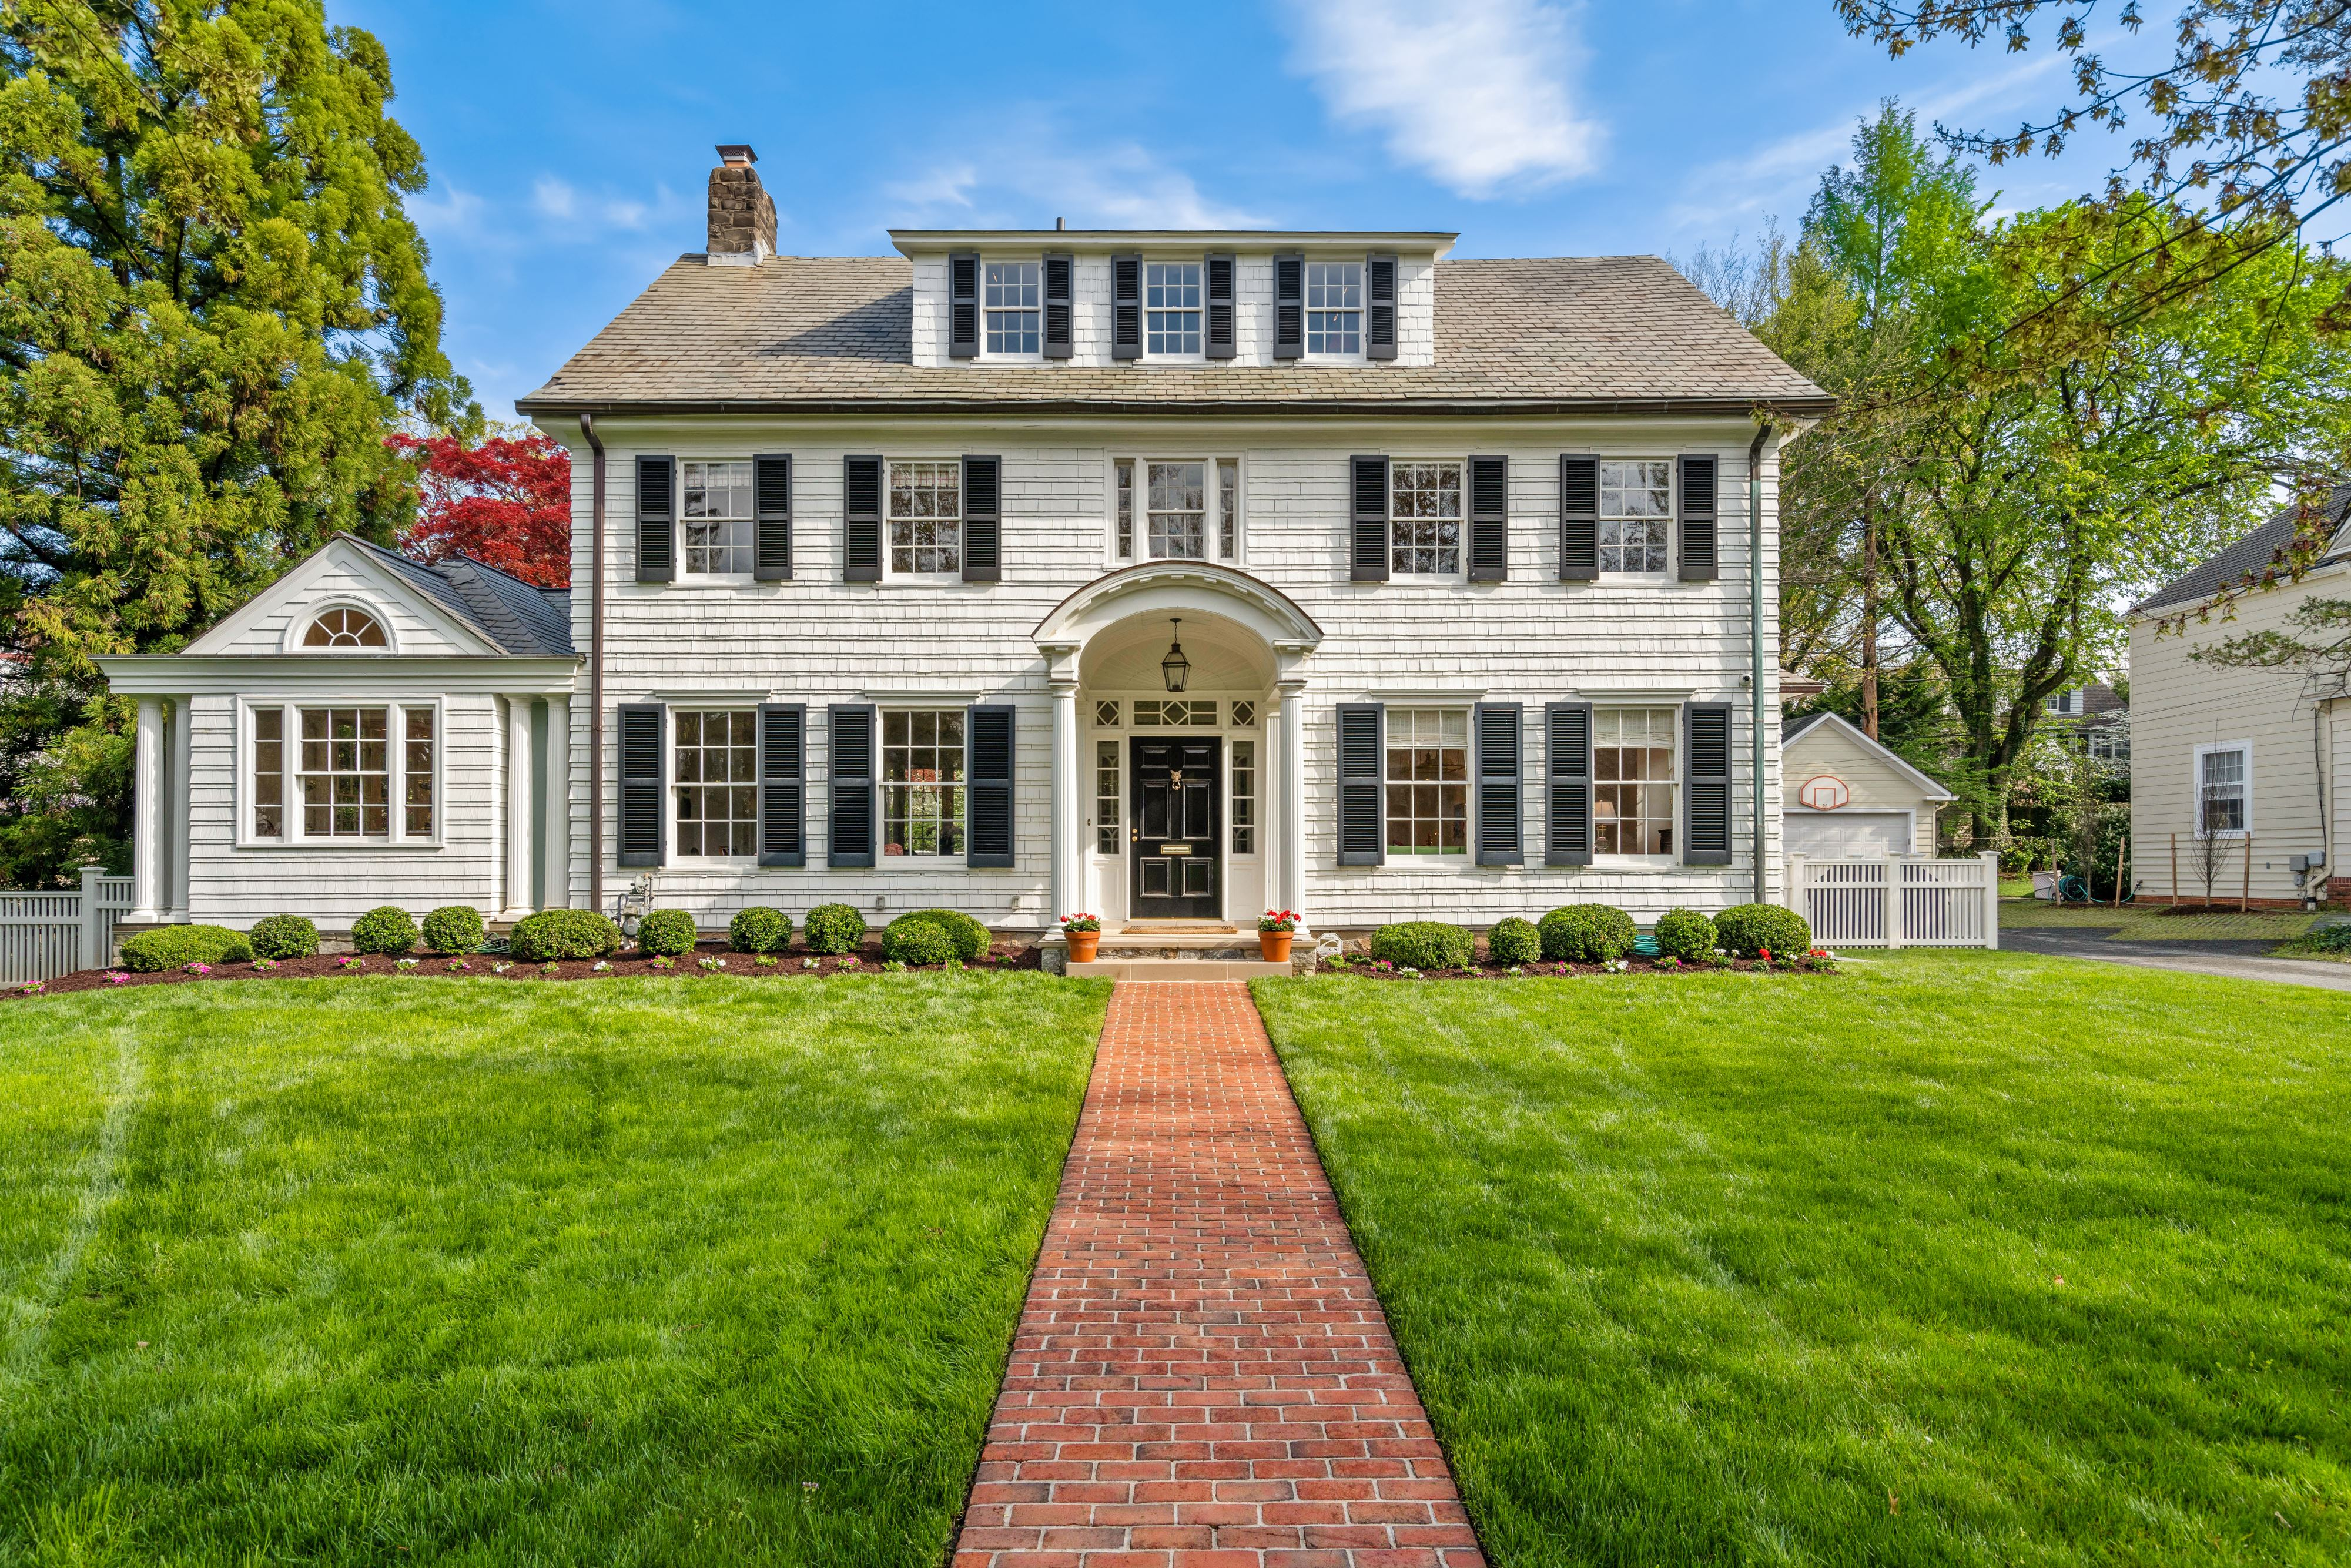 Chevy Chase, Md., house sells for $1 million over list price - The  Washington Post